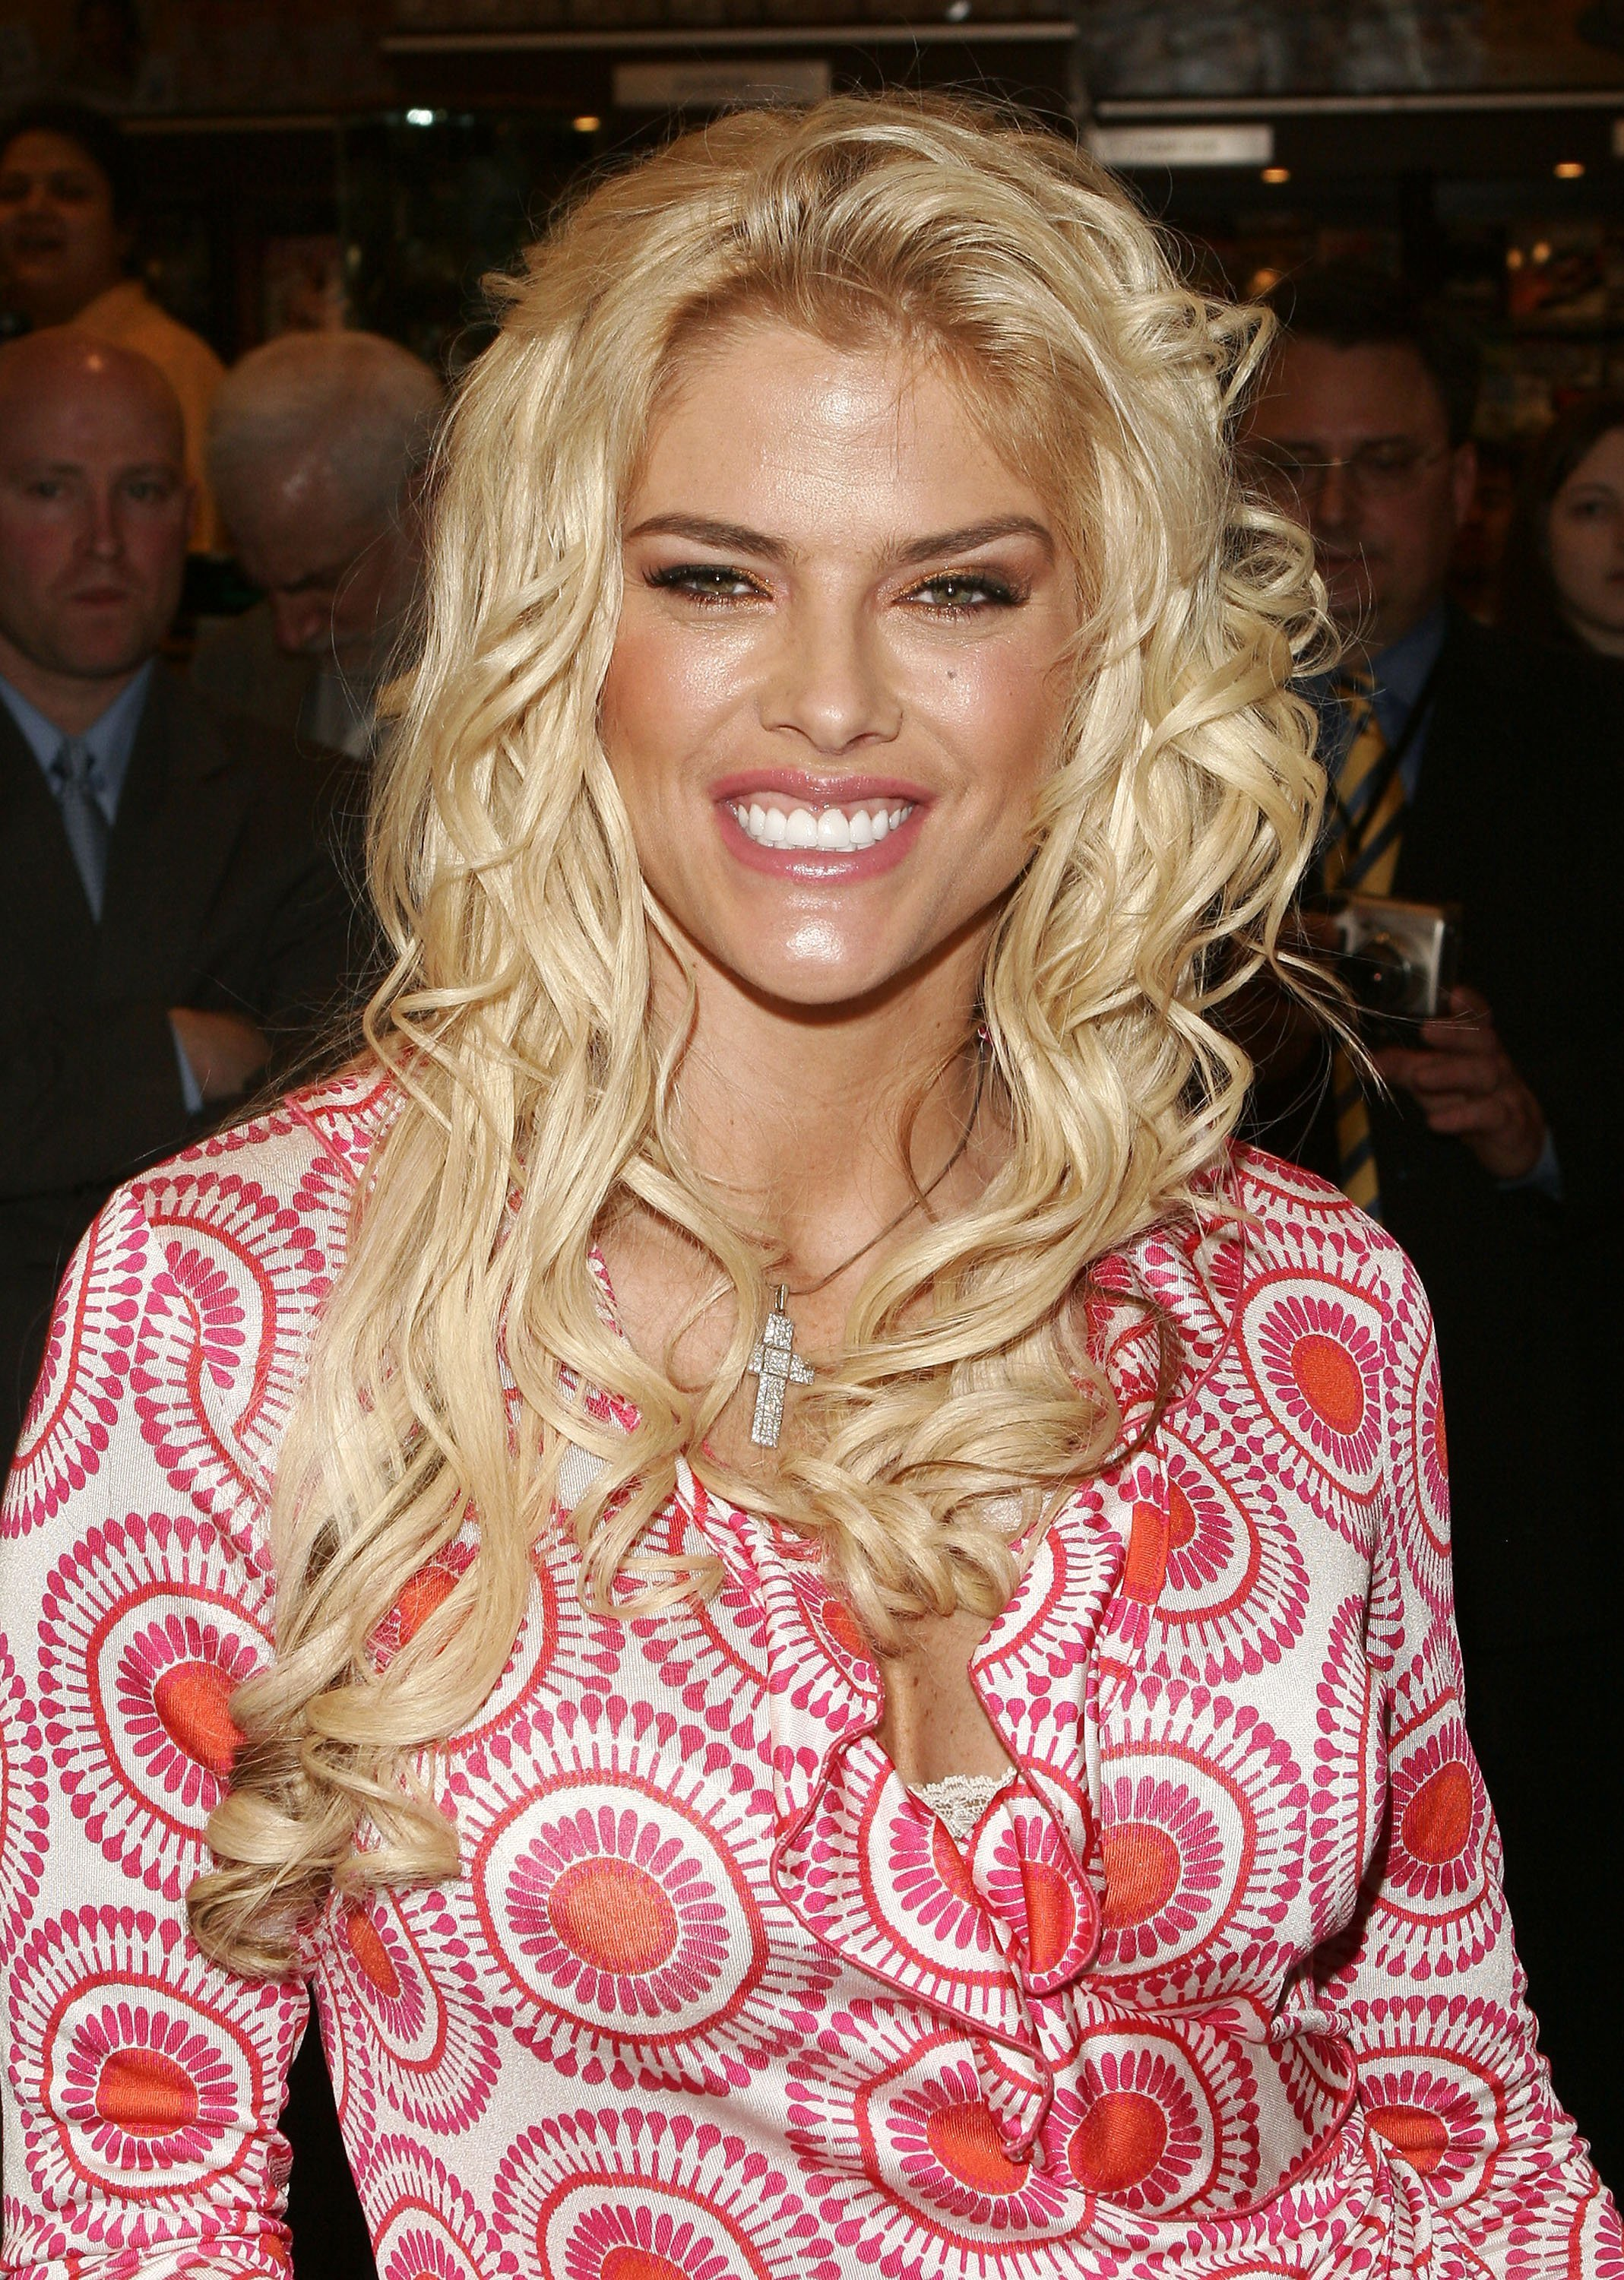 Model Anna Nicole | Getty Images/ Global Images Ukraine